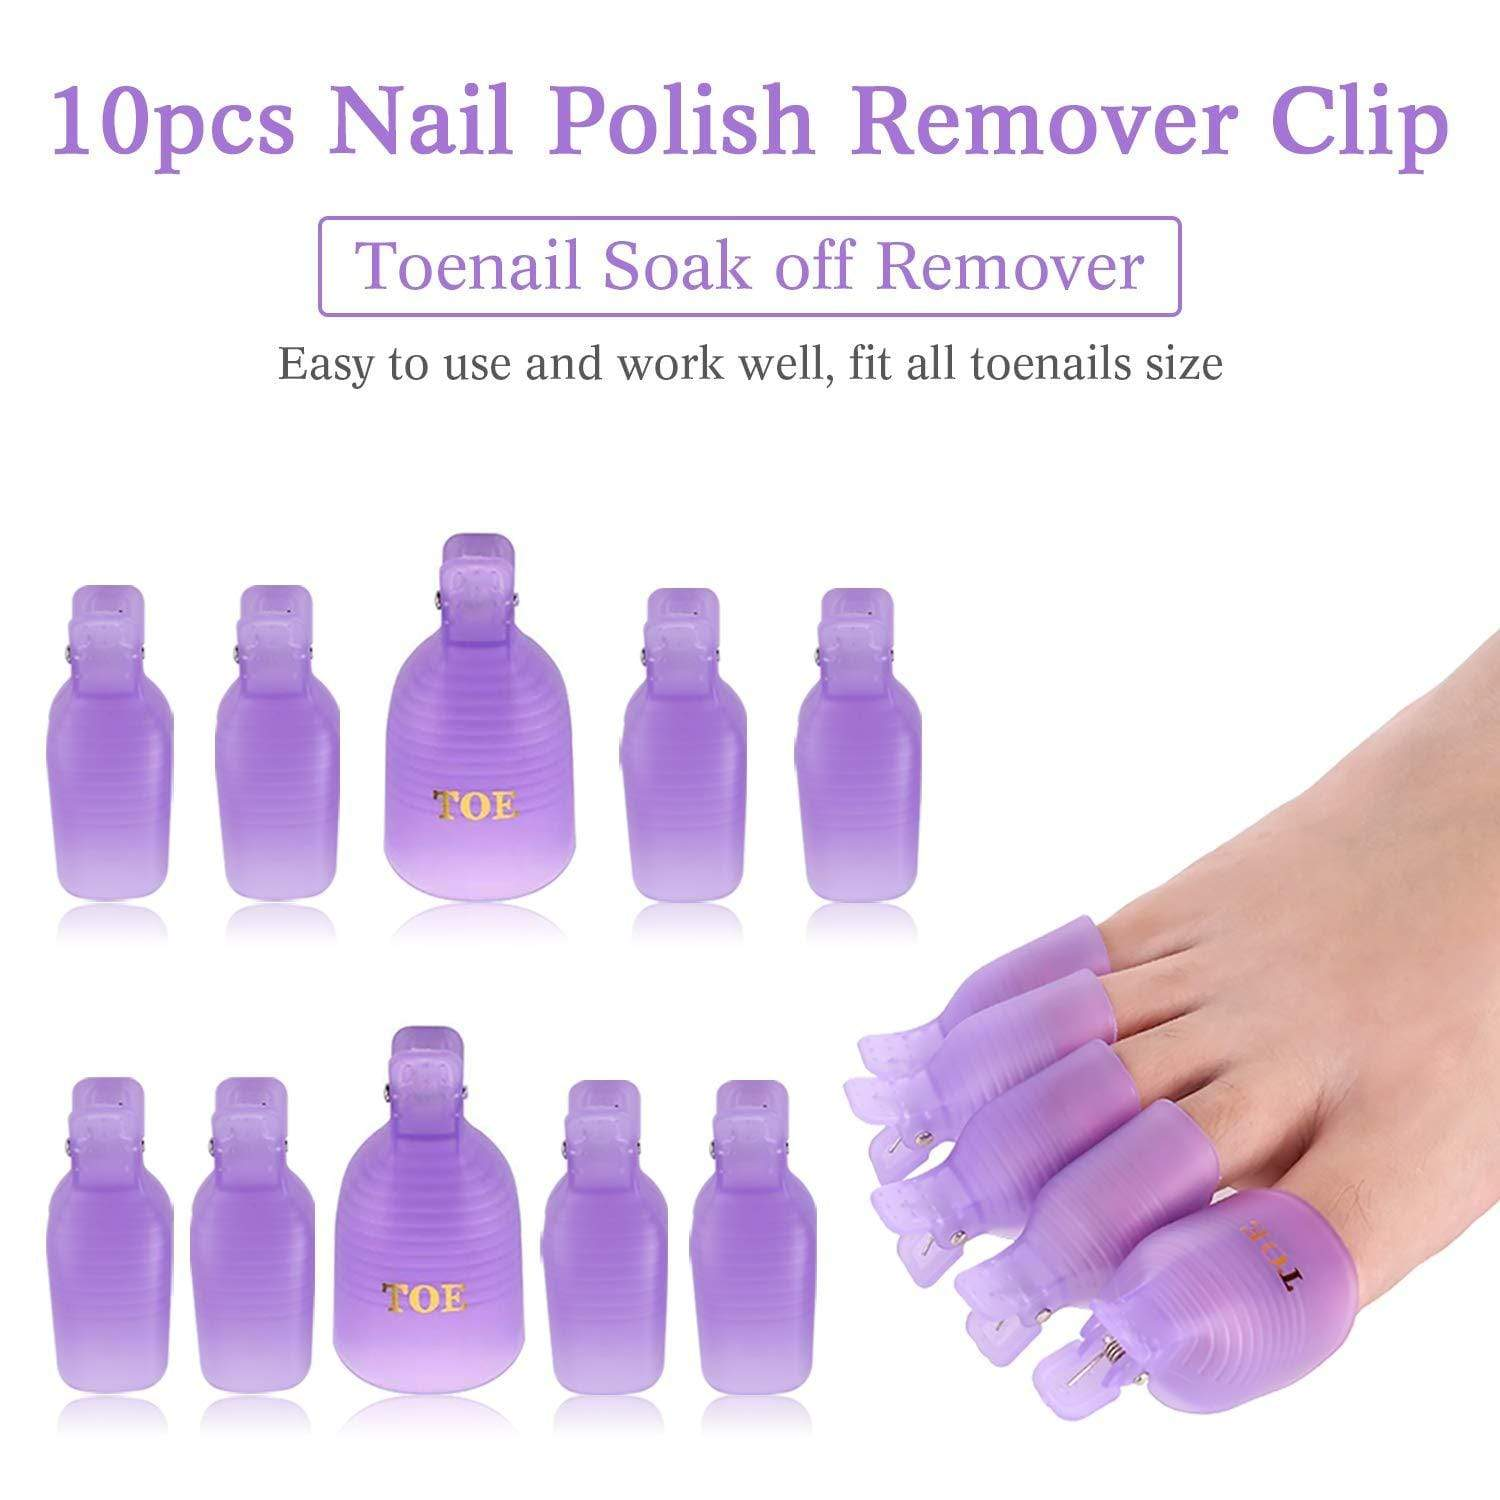 Gel Nail Polish Remover Clips Kit - Makartt